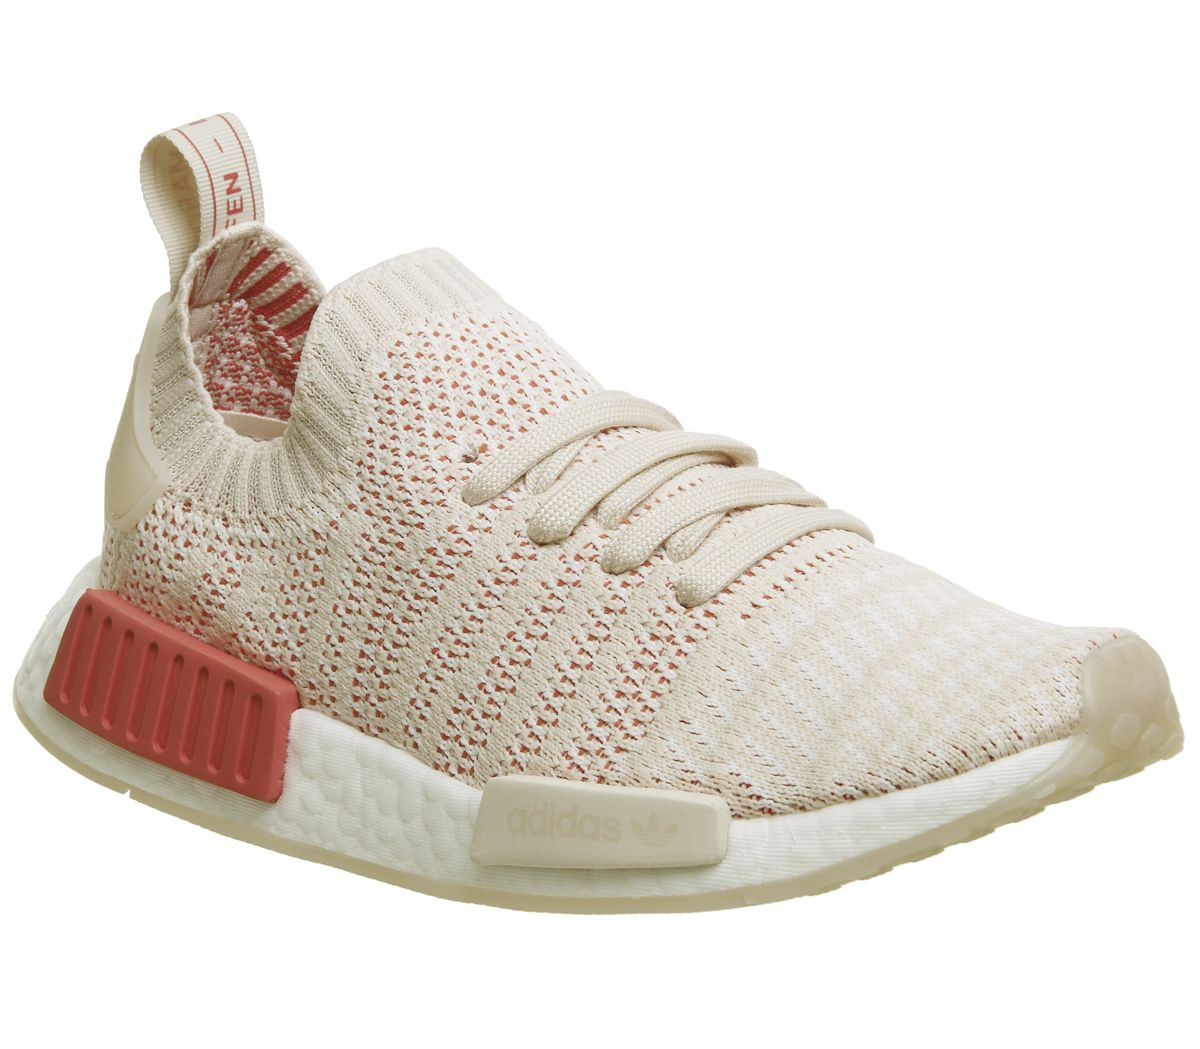 d3d7ad9aeaae7 adidas Nmd R1 Prime Knit Trainers Linen Crystal White - Hers trainers